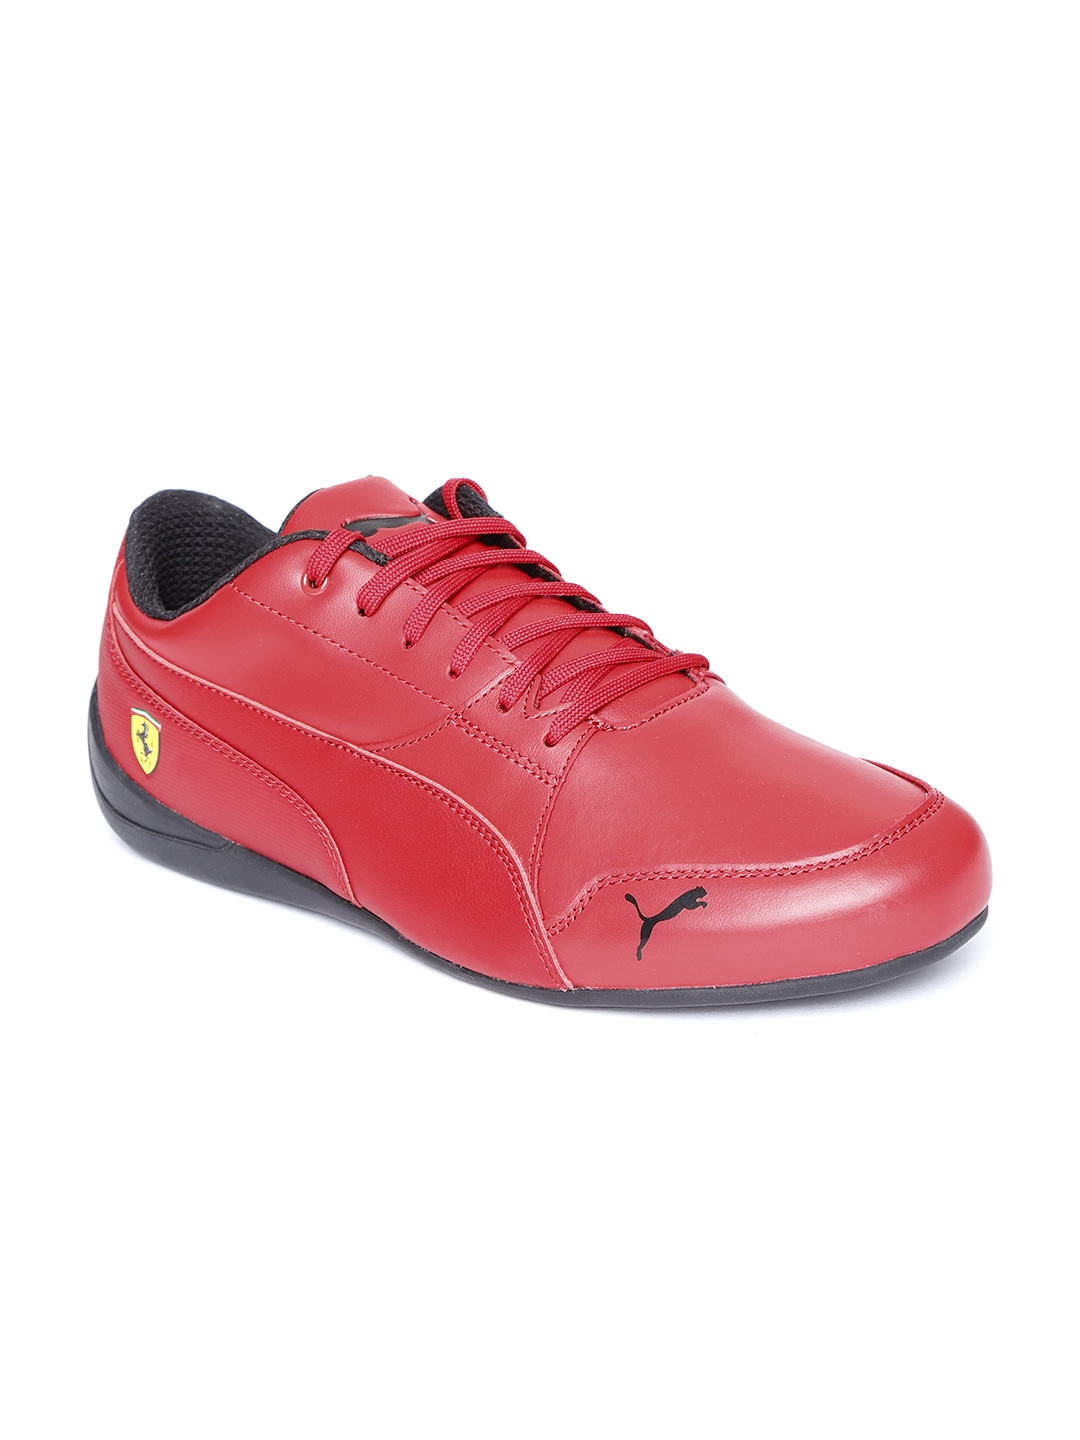 Puma Men Shoes In Red - Buy Puma Men Shoes In Red online in India f59b94171